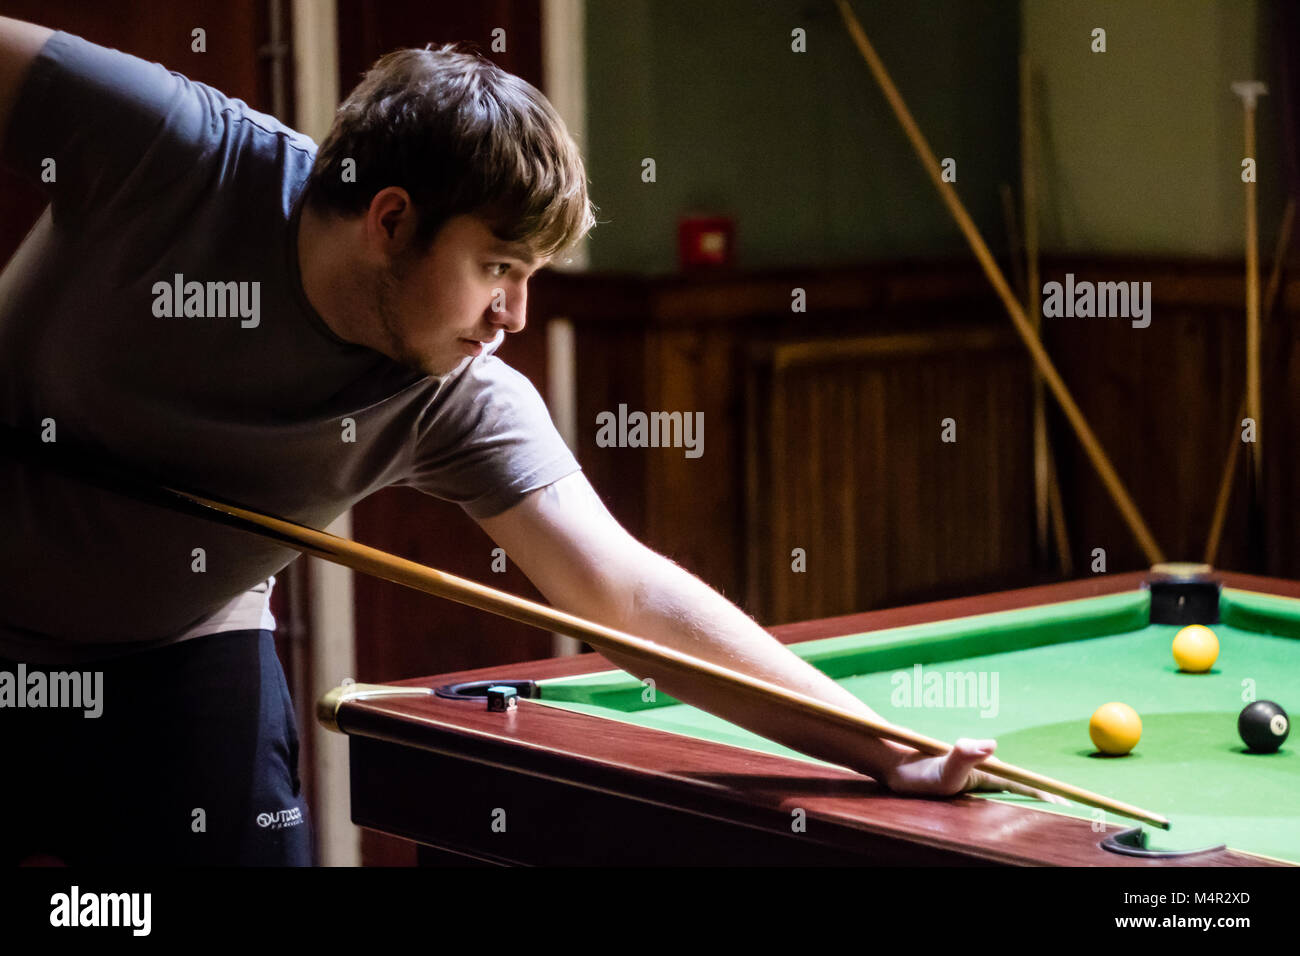 A man preparing to play a pool shot, taken from the side - Stock Image